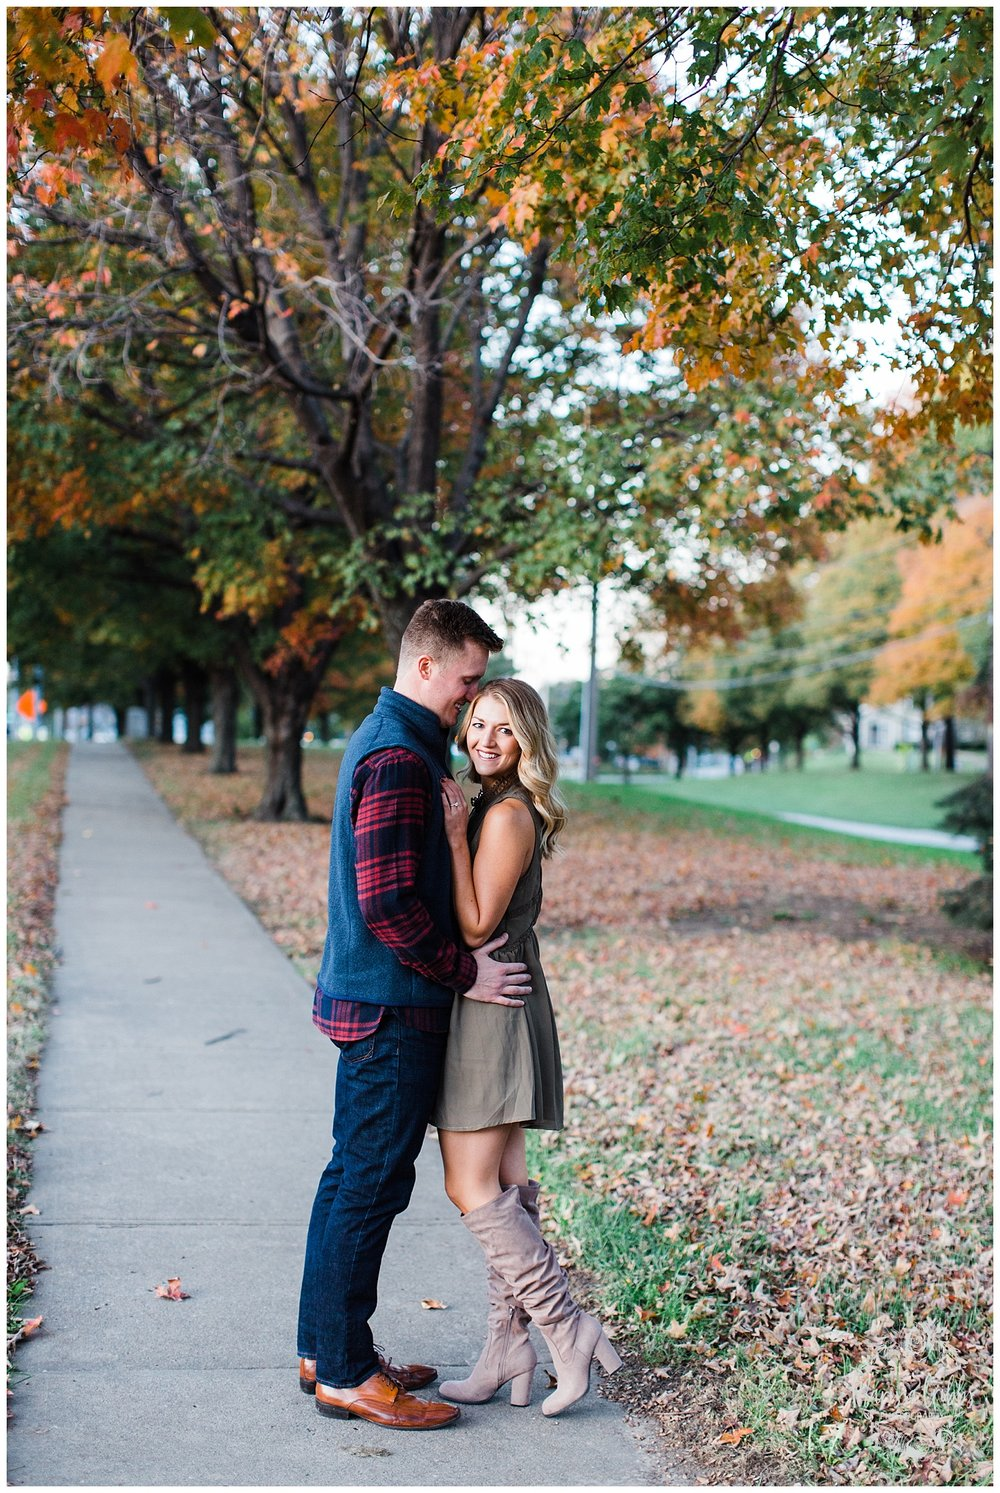 KATE & NATE ENGAGEMENT | NELSON ATKINS | MARISSA CRIBBS PHOTOGRAPHY_3583.jpg